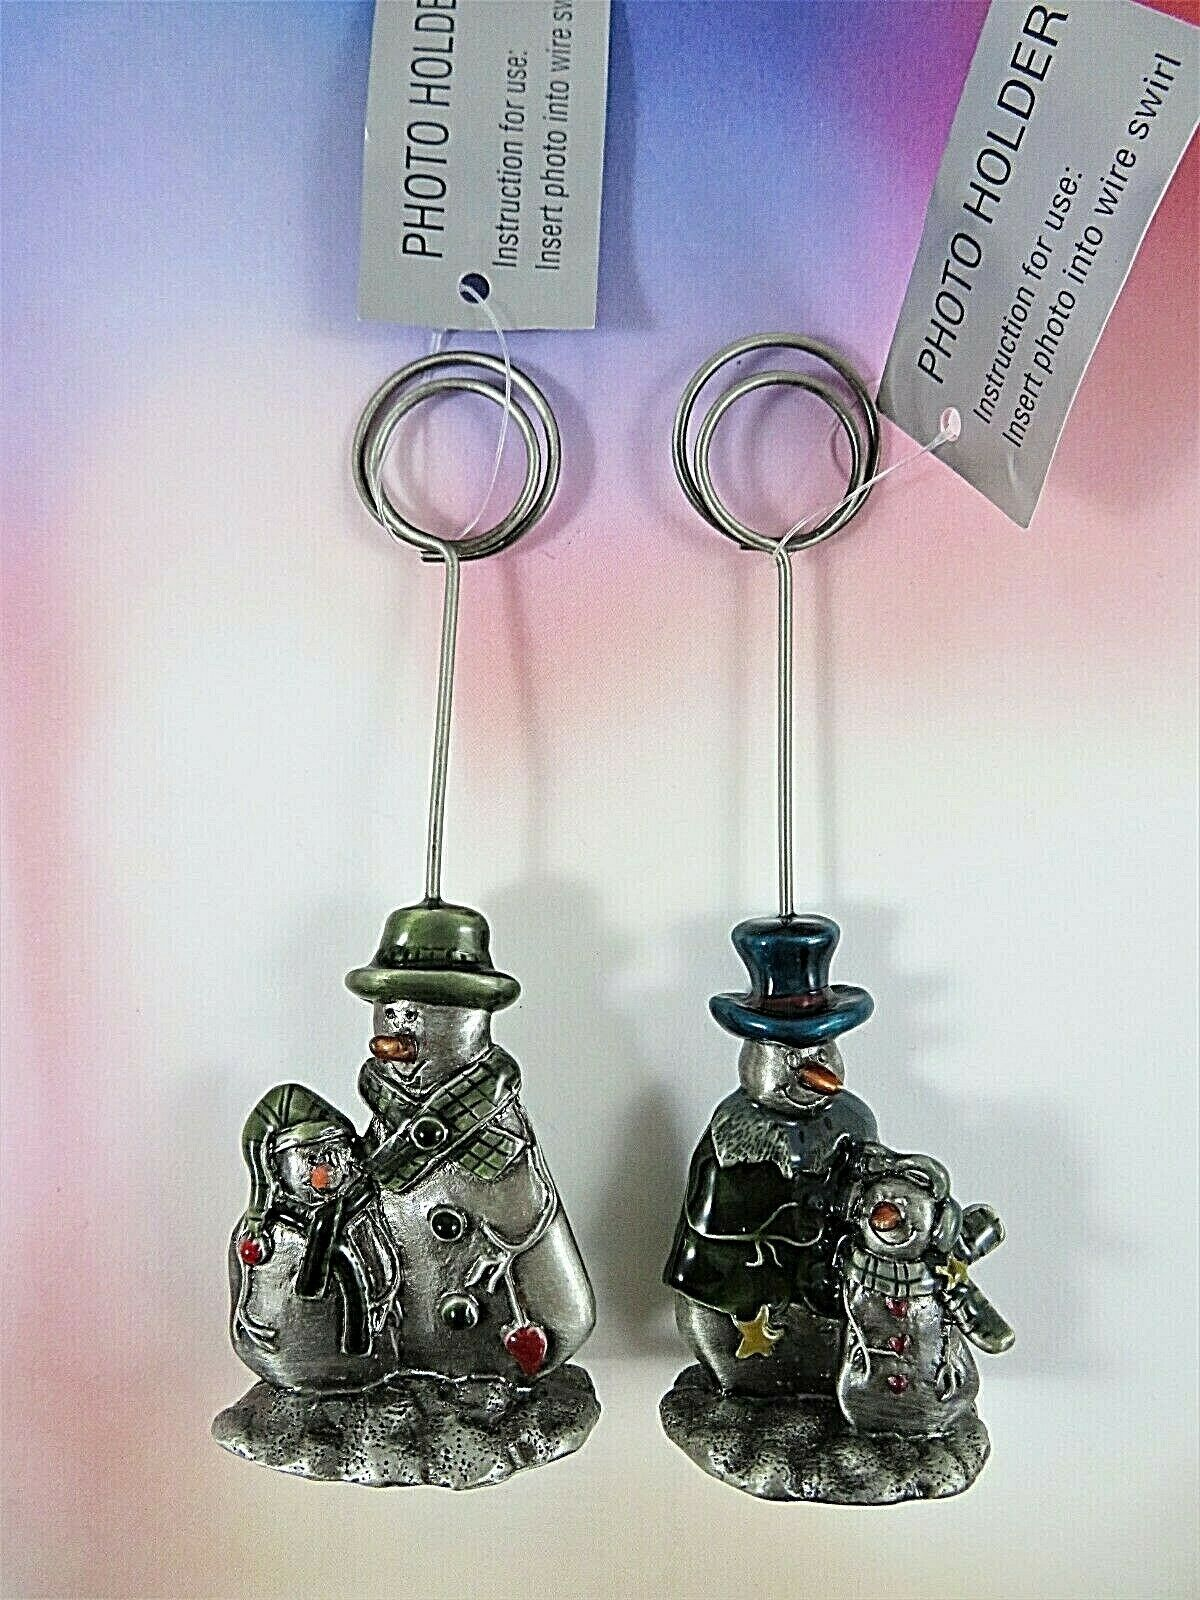 Pair Pewter Snowman Theme Christmas Card/Photo/Placecard Holders New With Tags - $21.77